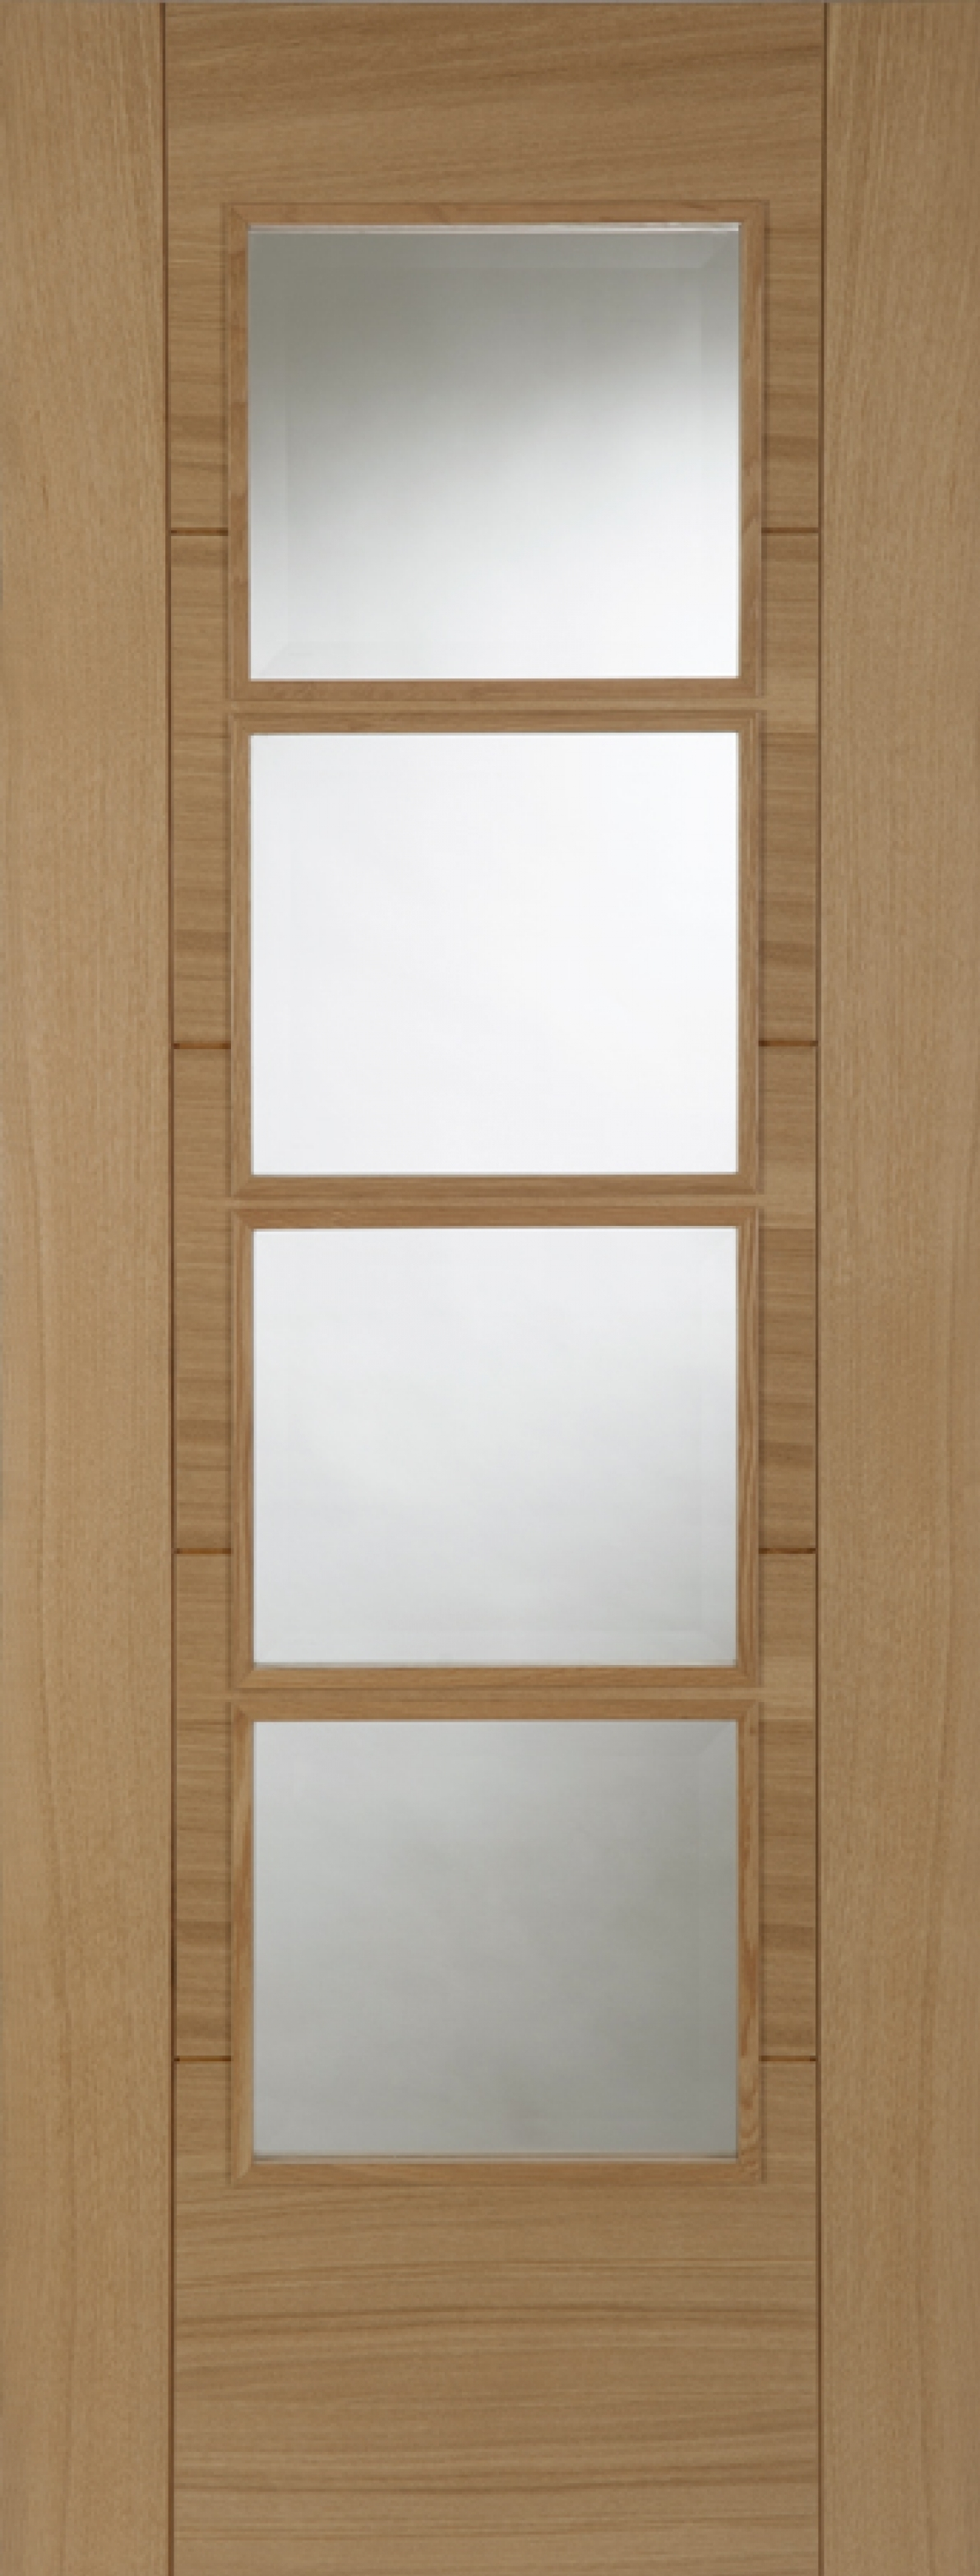 Oak Iseo Central 4l Deluxe - Prefinished Unglazed FD30